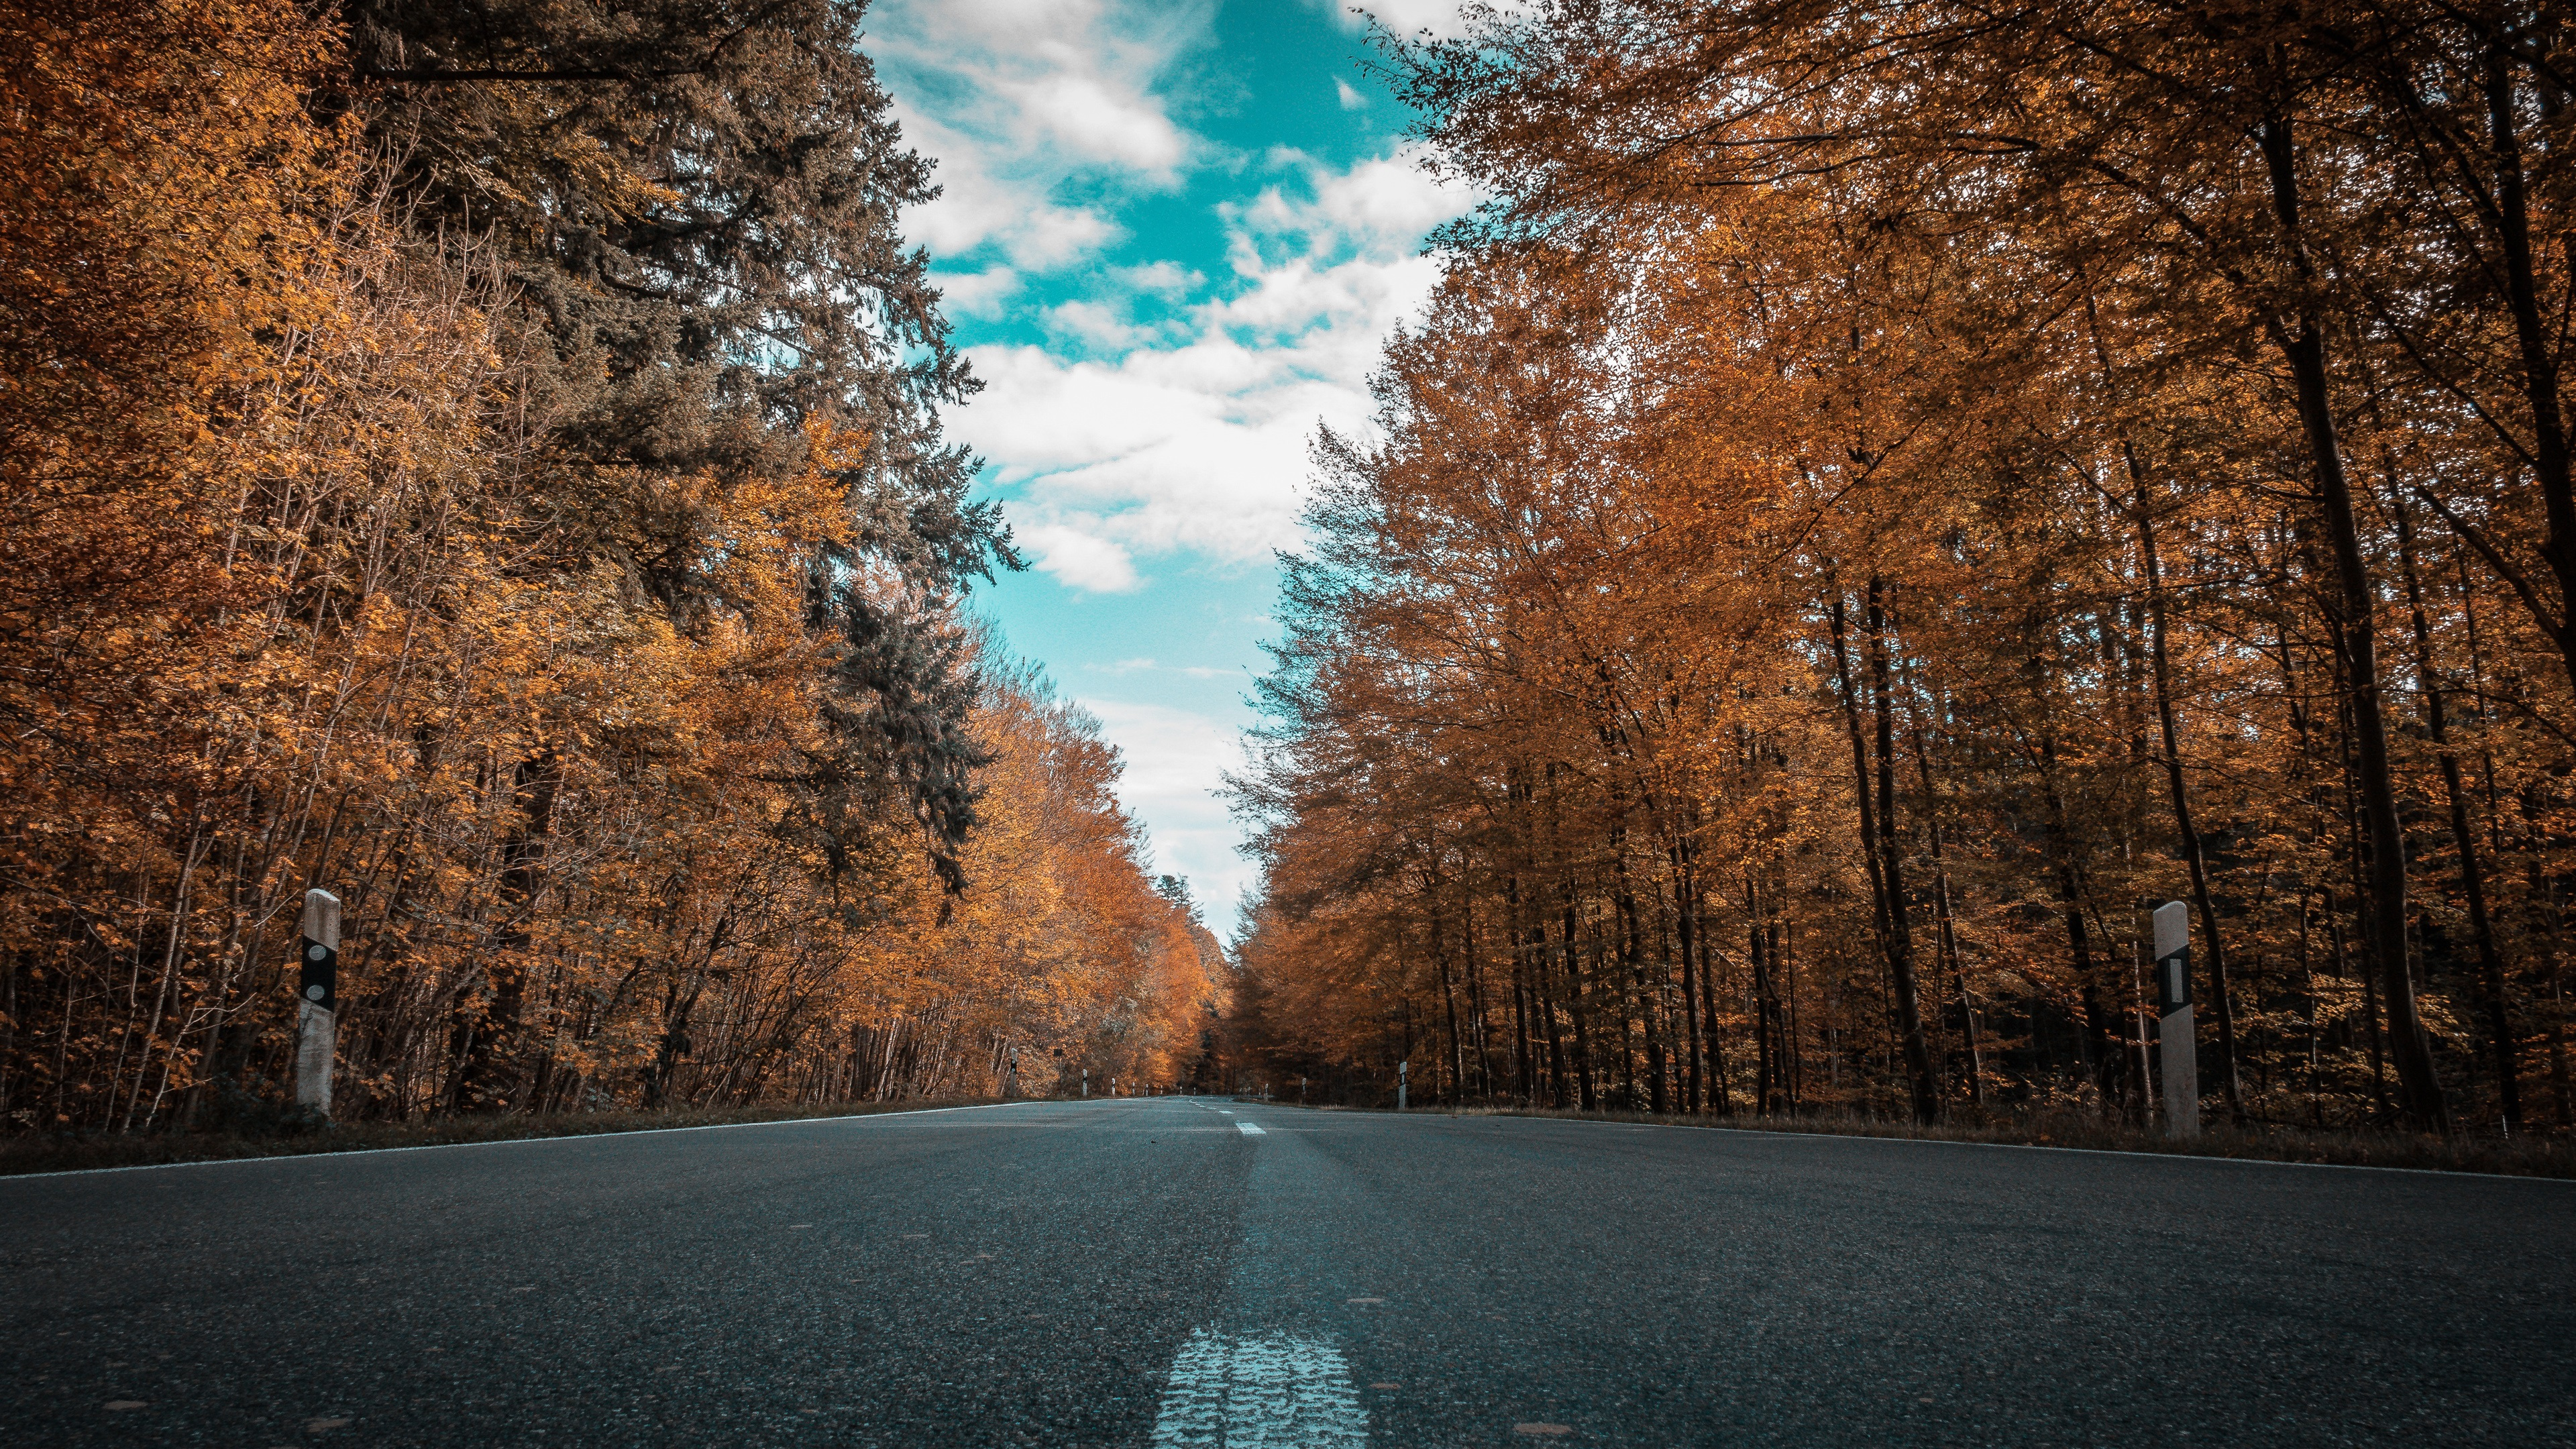 Alone Girl Wallpaper Hd Download Wallpaper Autumn Road Forest Trees 3840x2160 Uhd 4k